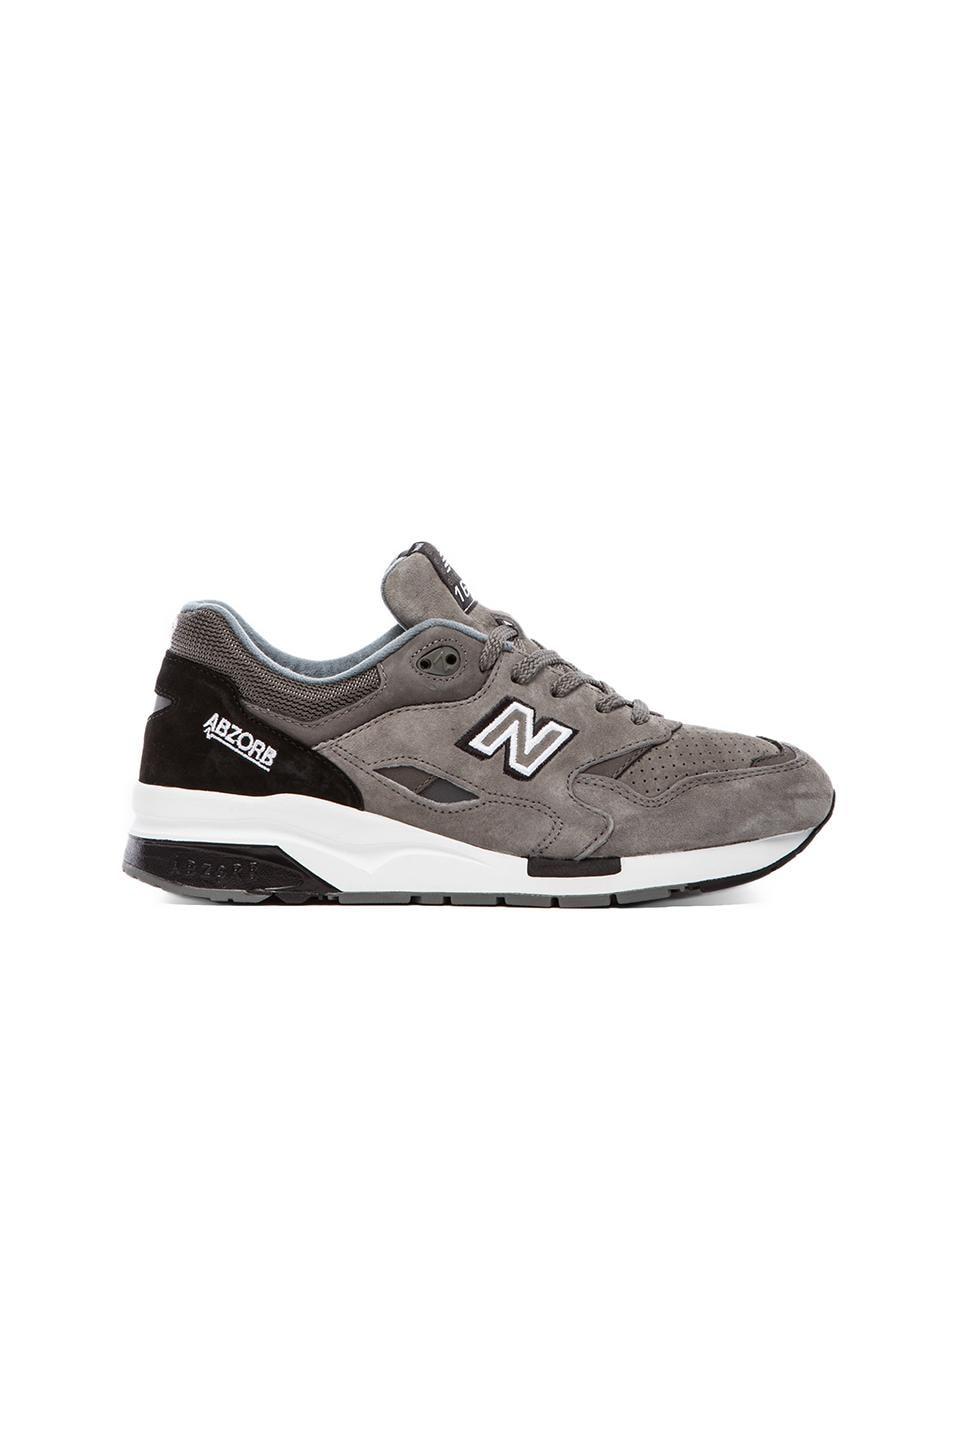 New Balance Made in the USA CM1600 in Grey